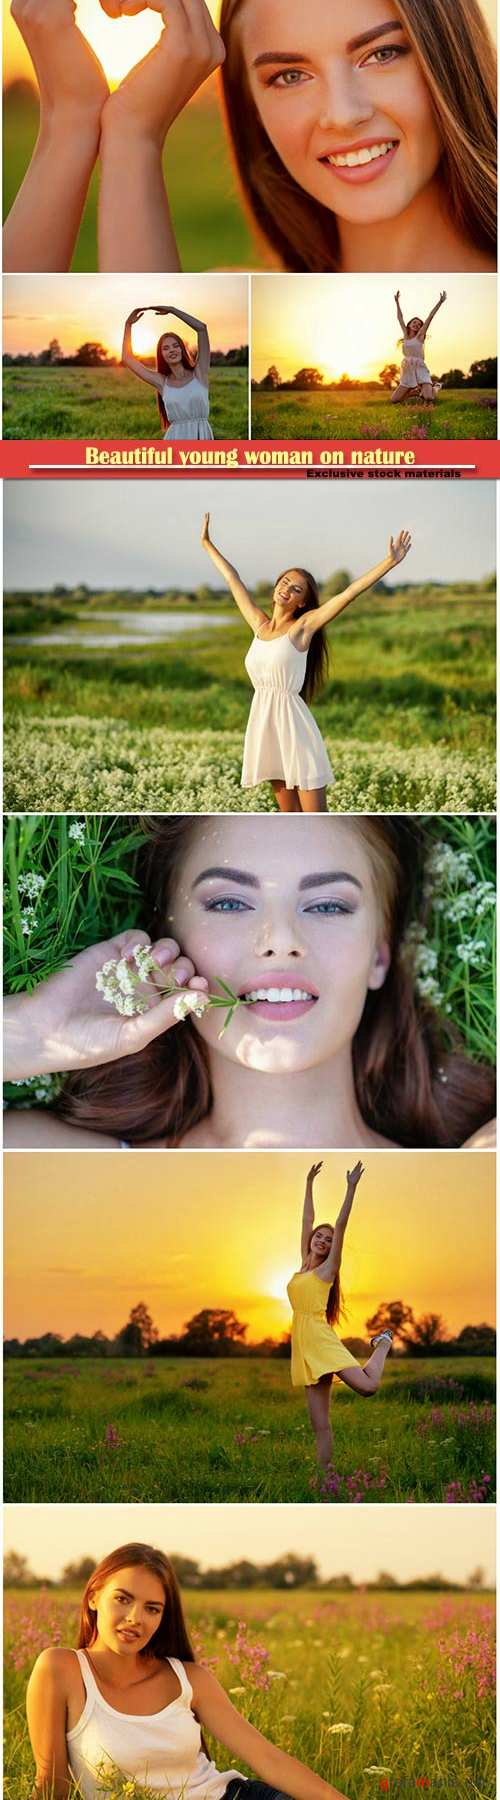 Beautiful young woman on nature over field background